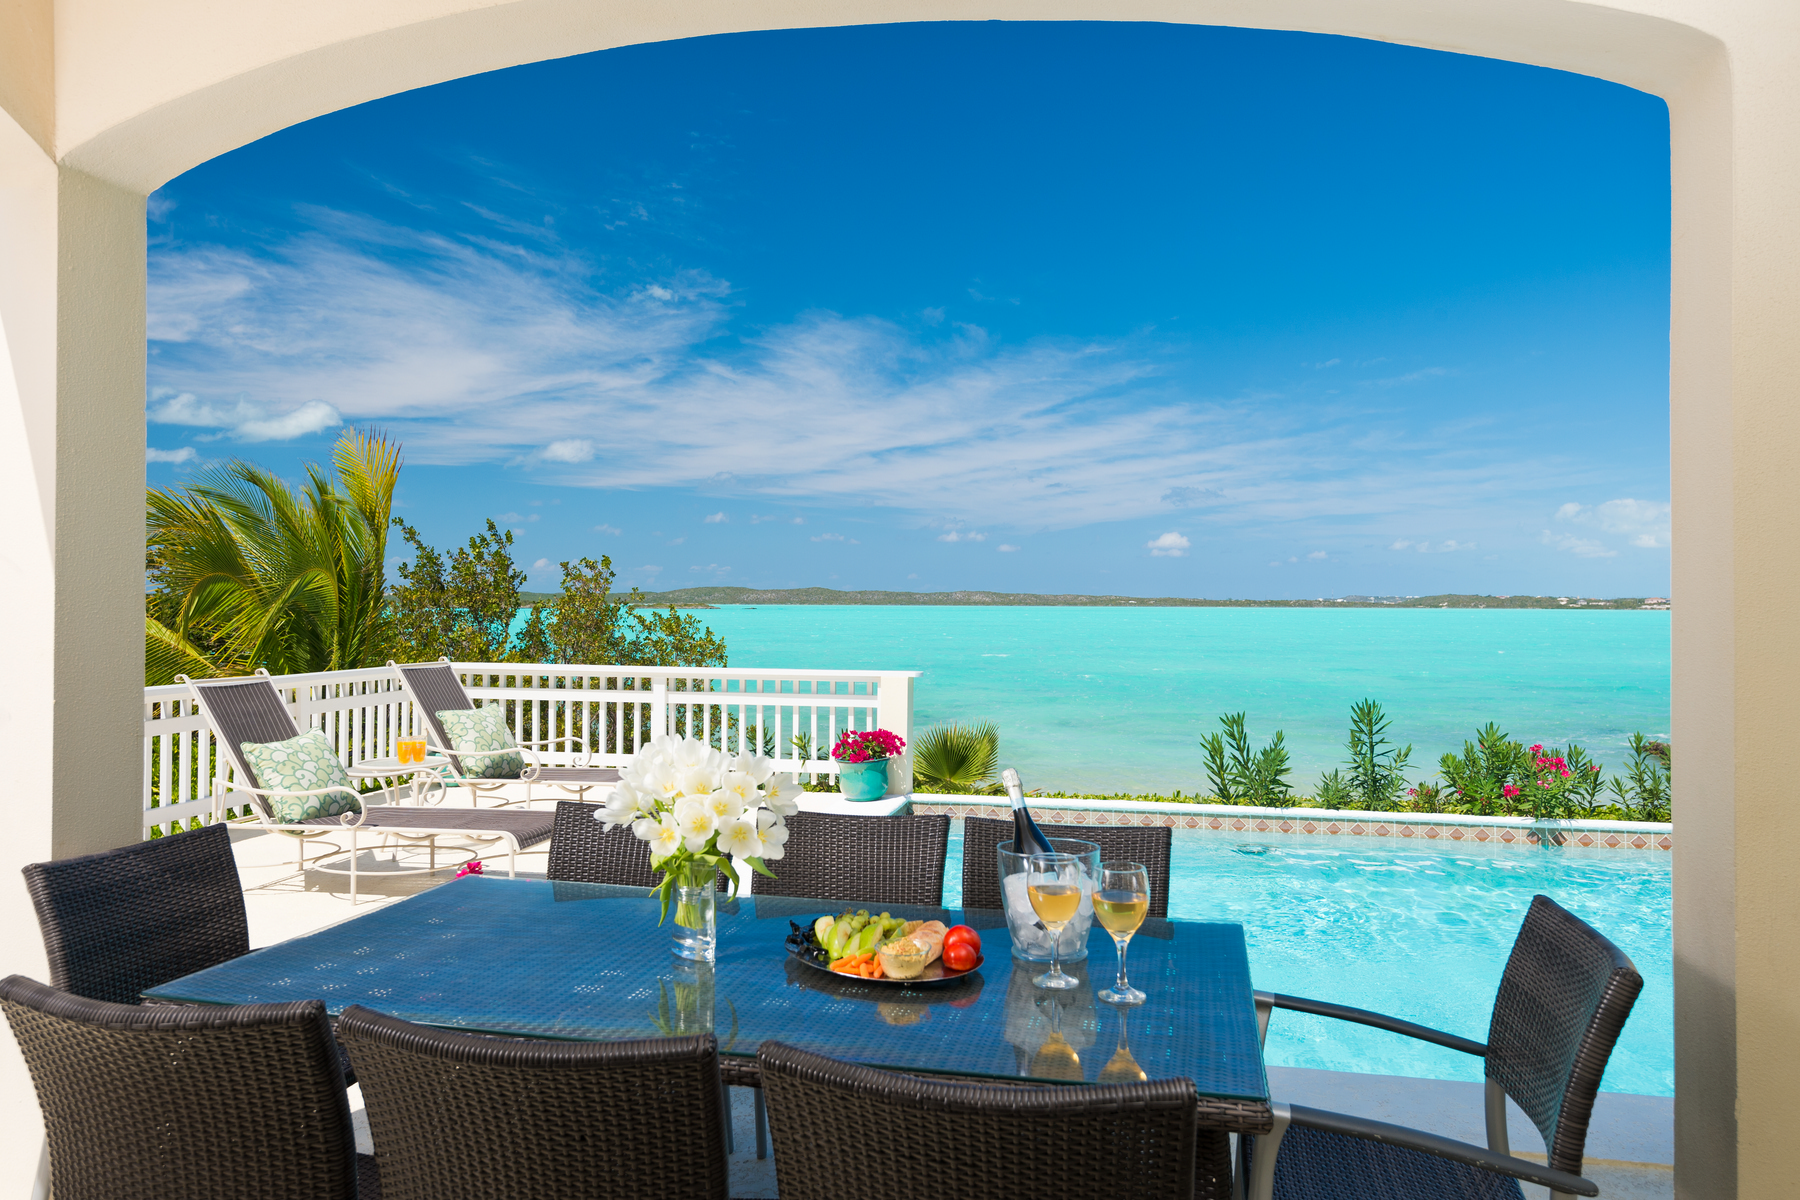 Single Family Home for Sale at Bright Idea Villa Bright Idea Villa, Chalk Sound Drive Chalk Sound, Providenciales TKCA 1ZZ Turks And Caicos Islands